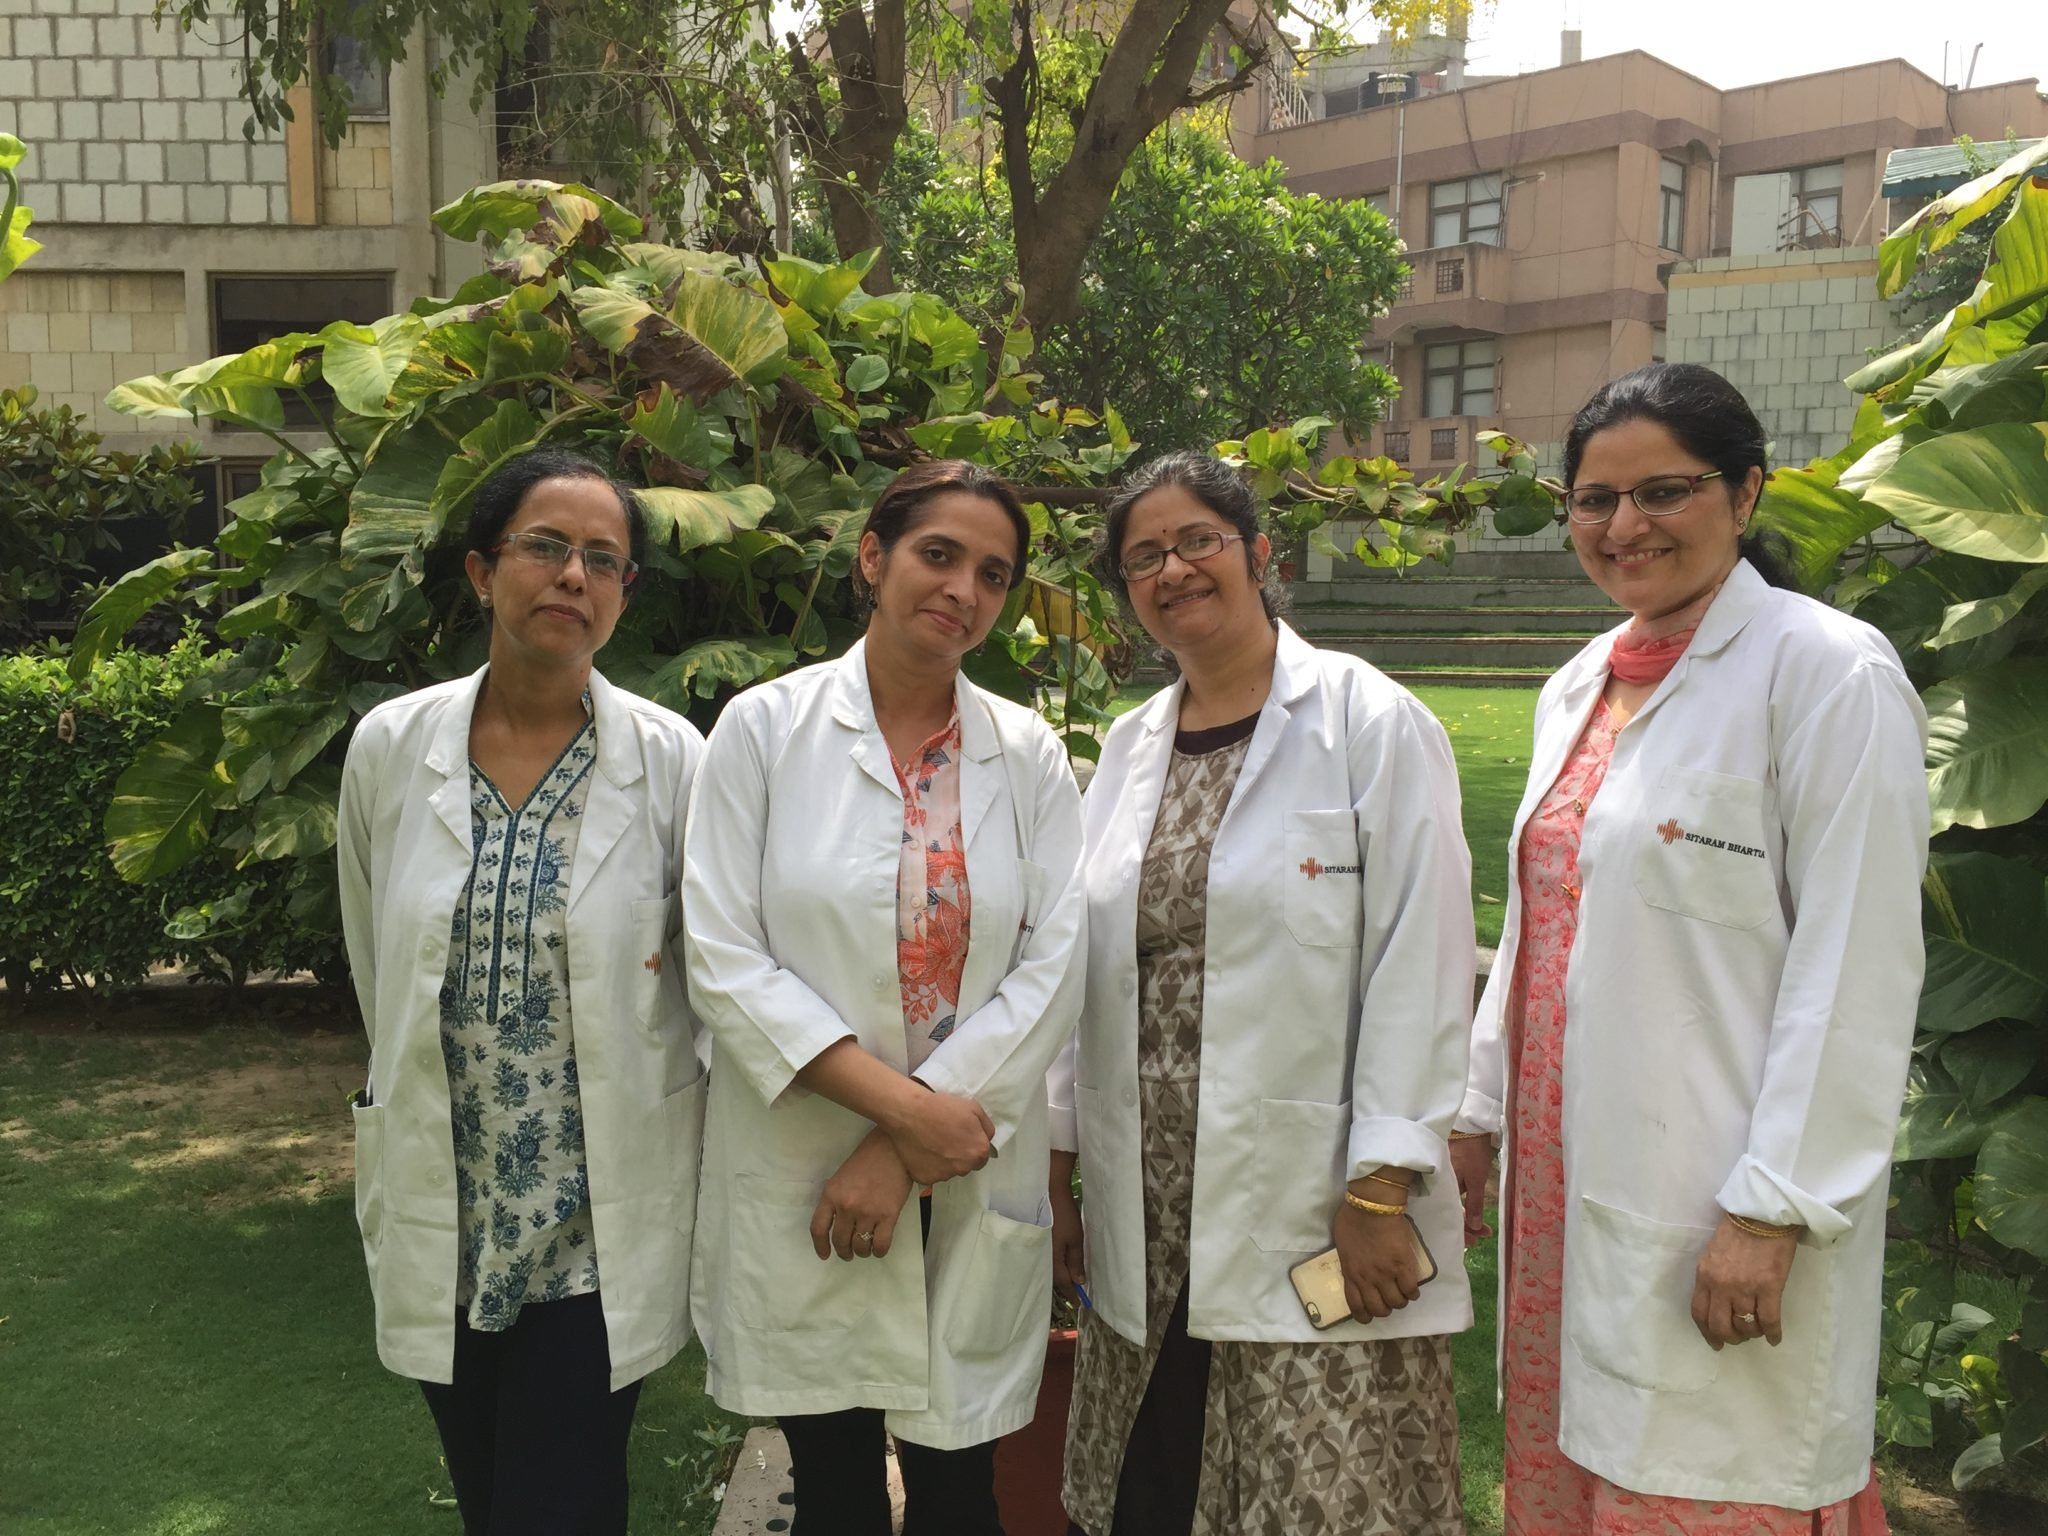 Best Gynecologist in Delhi - Recommended by Doctors!